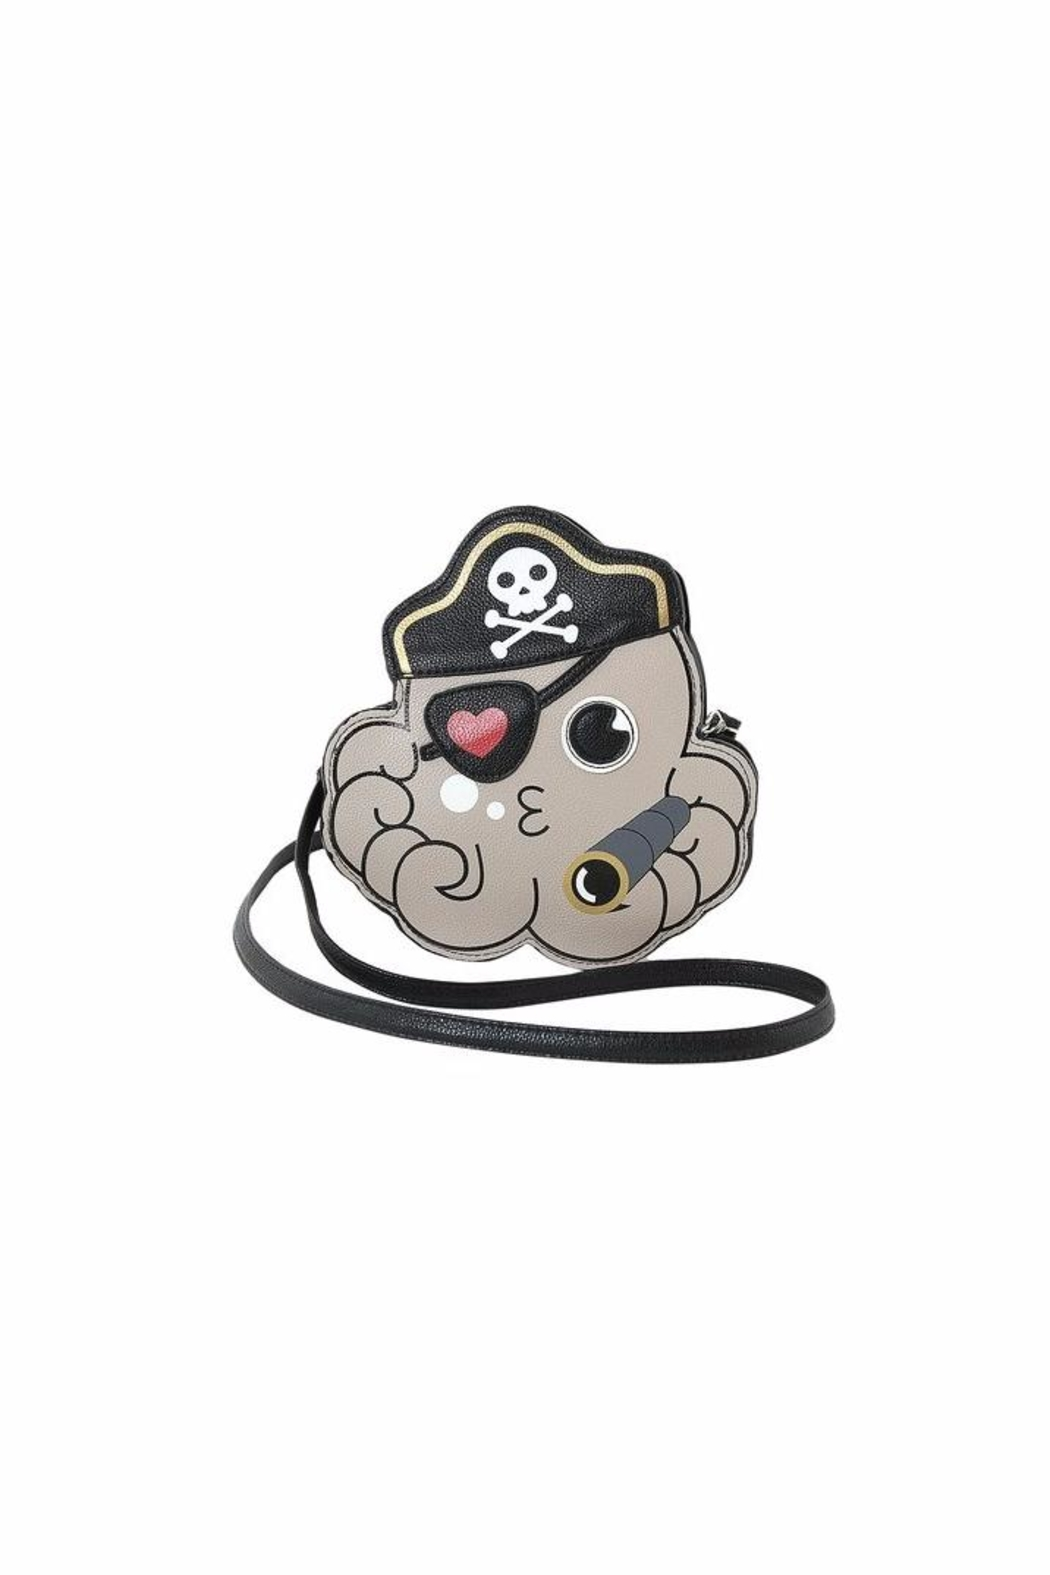 Sleepyville Critters Pirate Octopus Bag - Main Image